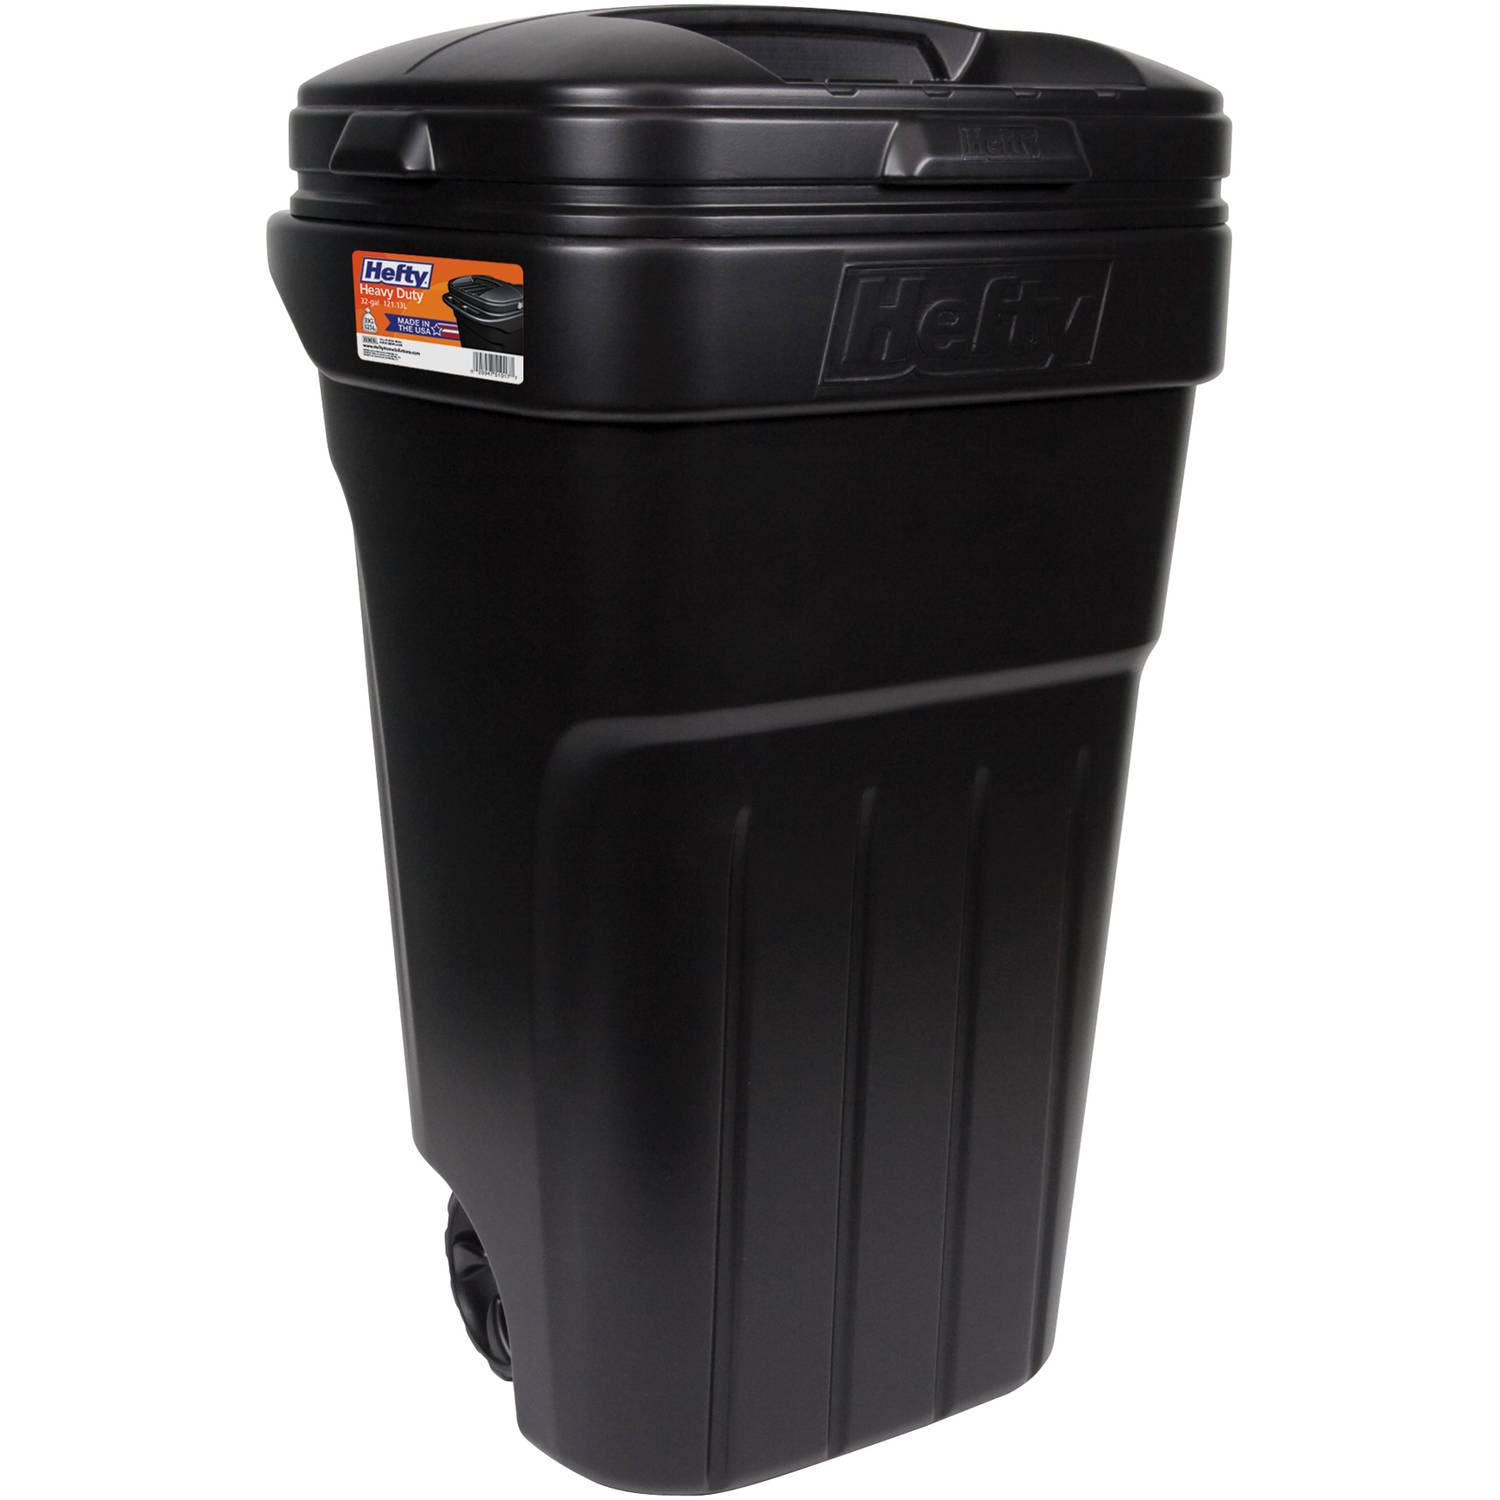 ecoark 45 gallon wheeled trash can - walmart